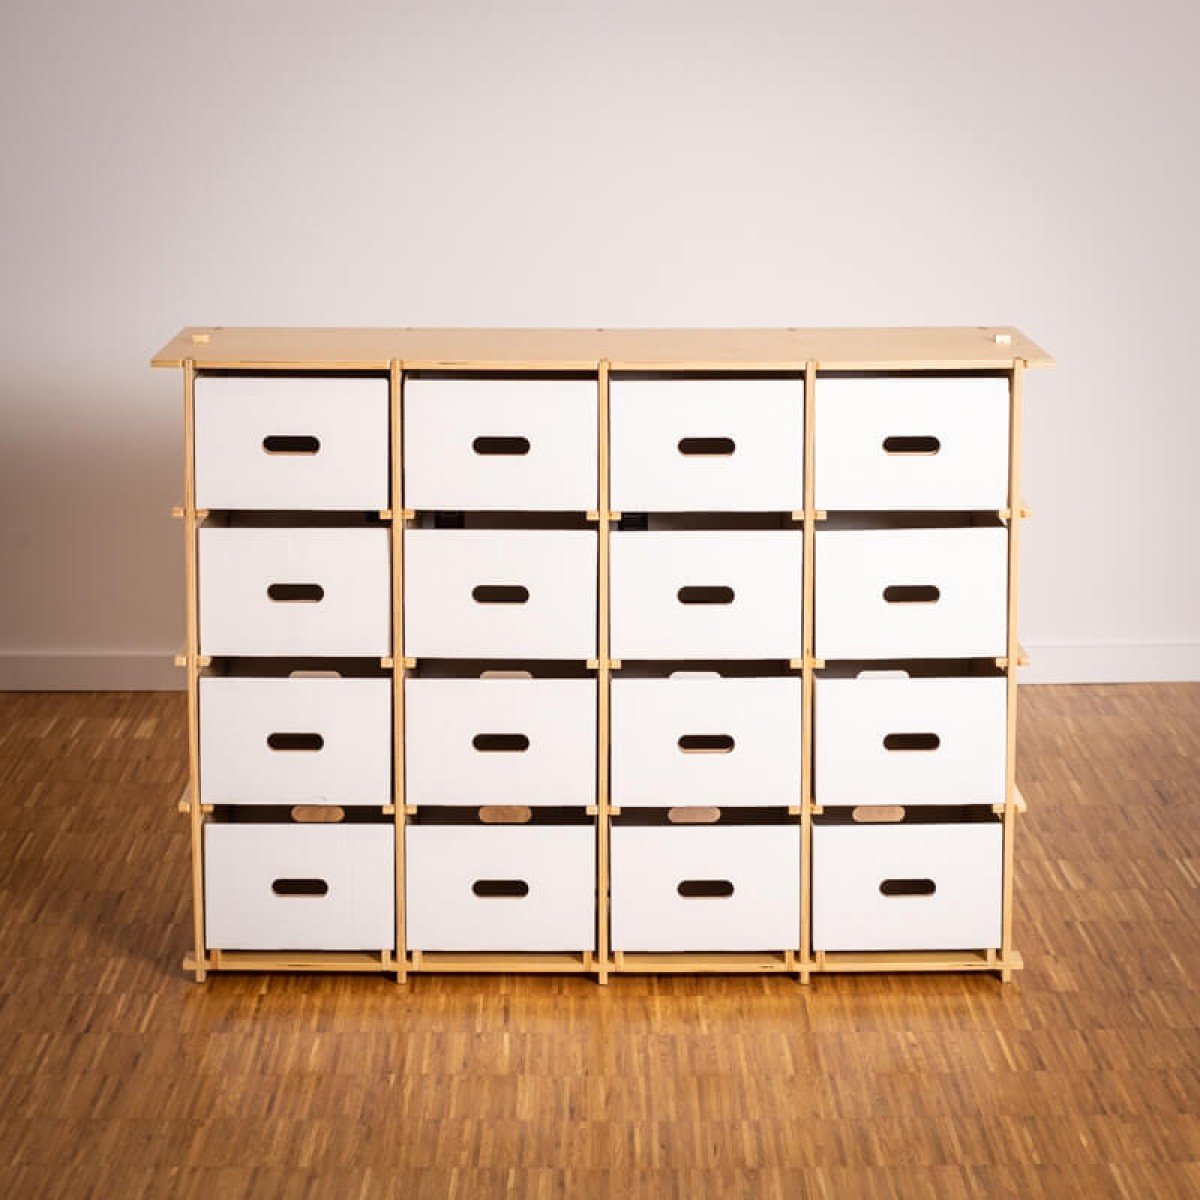 16boxes - Fourbyfour (4x4) - Sideboard